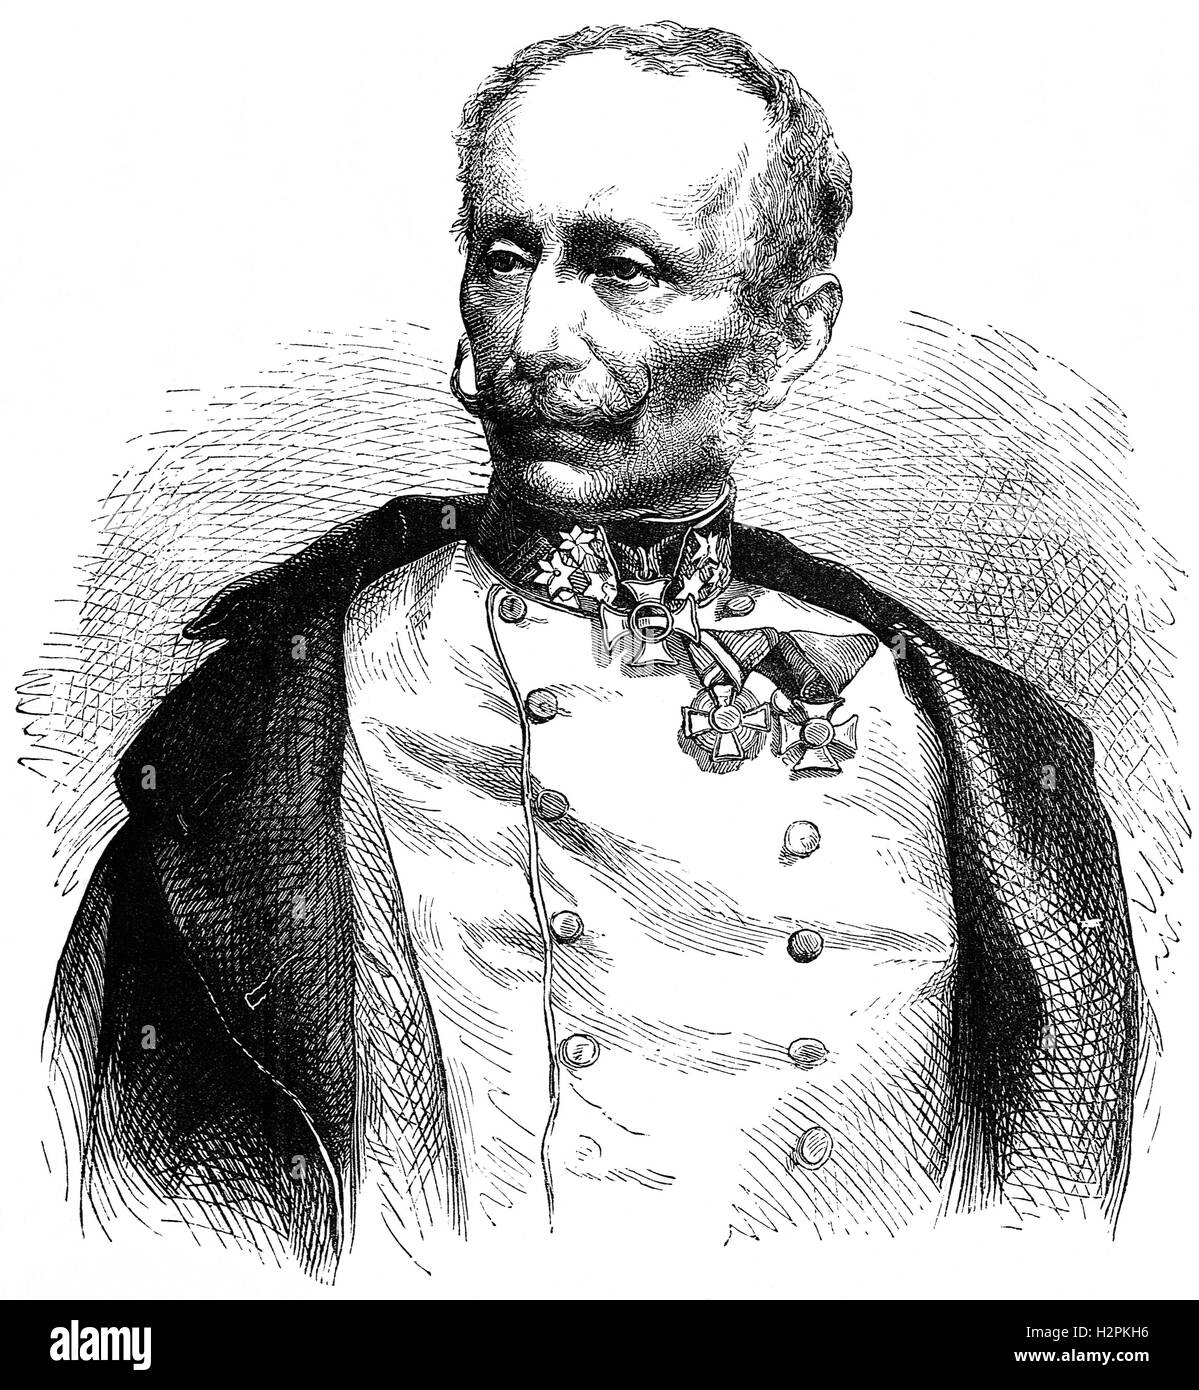 Ludwig August Ritter von Benedek (1804 – 1881) was an Austrian general (of Hungarian descent, best known for commanding - Stock Image